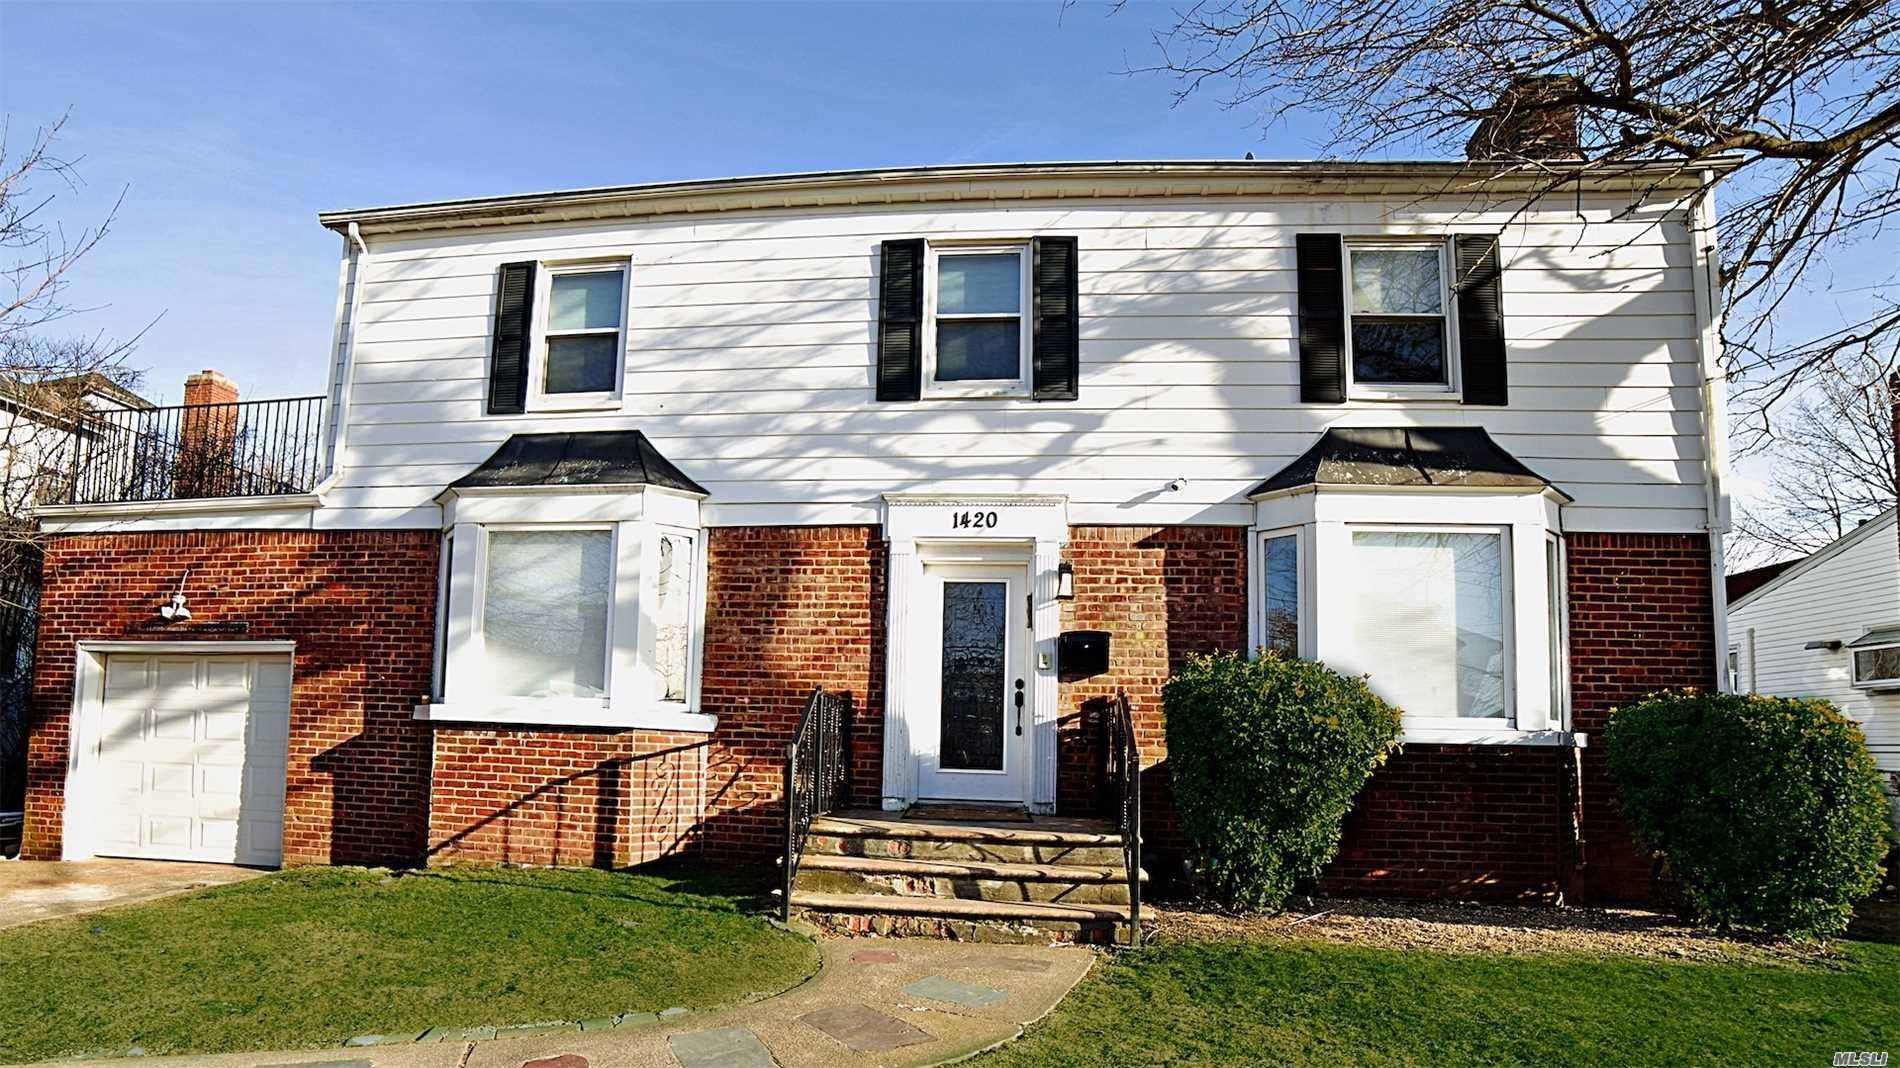 Fully Renovated House On Oversize Property. Hardwood Floors Through Out . Formal Dining Room And Huge Open Concept Kitchen. Large Formal Dining Room And Formal Living Room. 0.5 Bath. 4Br On The 2nd Floor And 2 Full Bath.